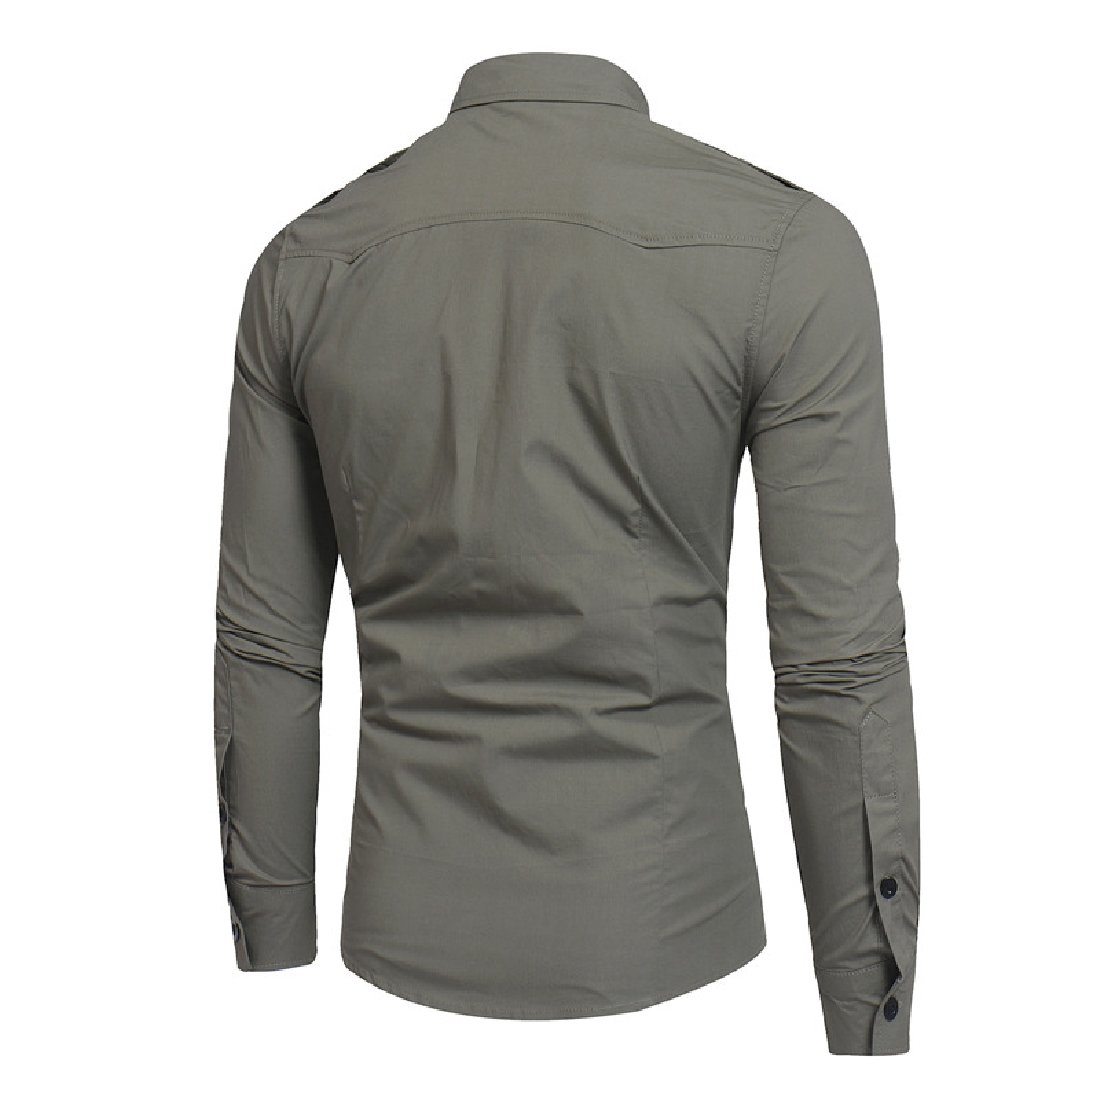 YUNY Mens Tactical Epaulet Style Slim Long Sleeve Casual Button Down Shirts with Pocket Army Green L